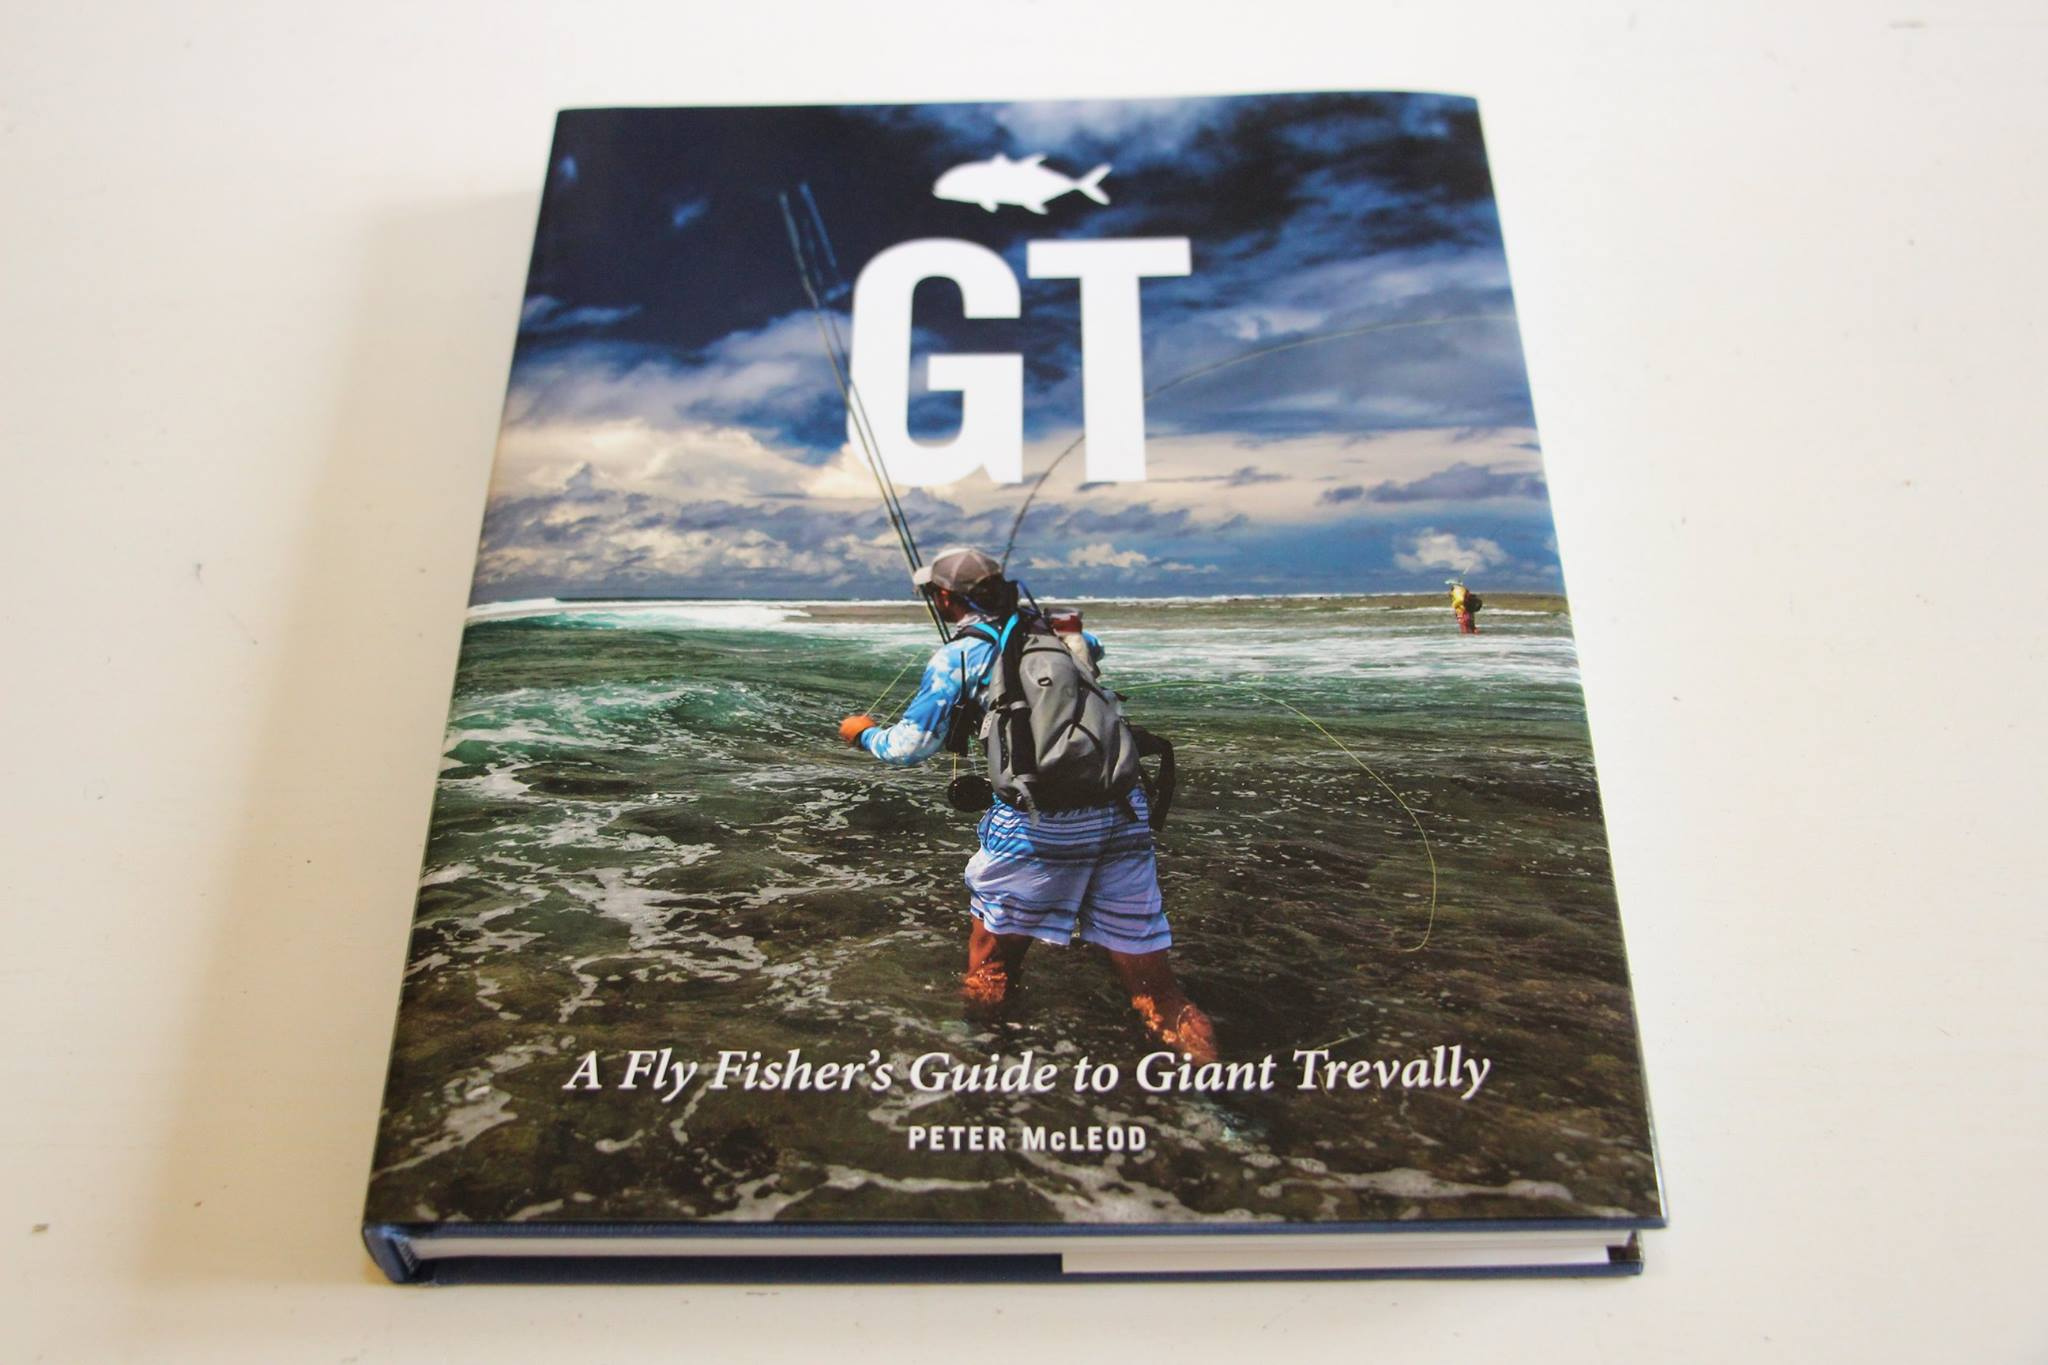 Gt - A Fly Fishers Guide to Giant Trevally, Peter McLeod